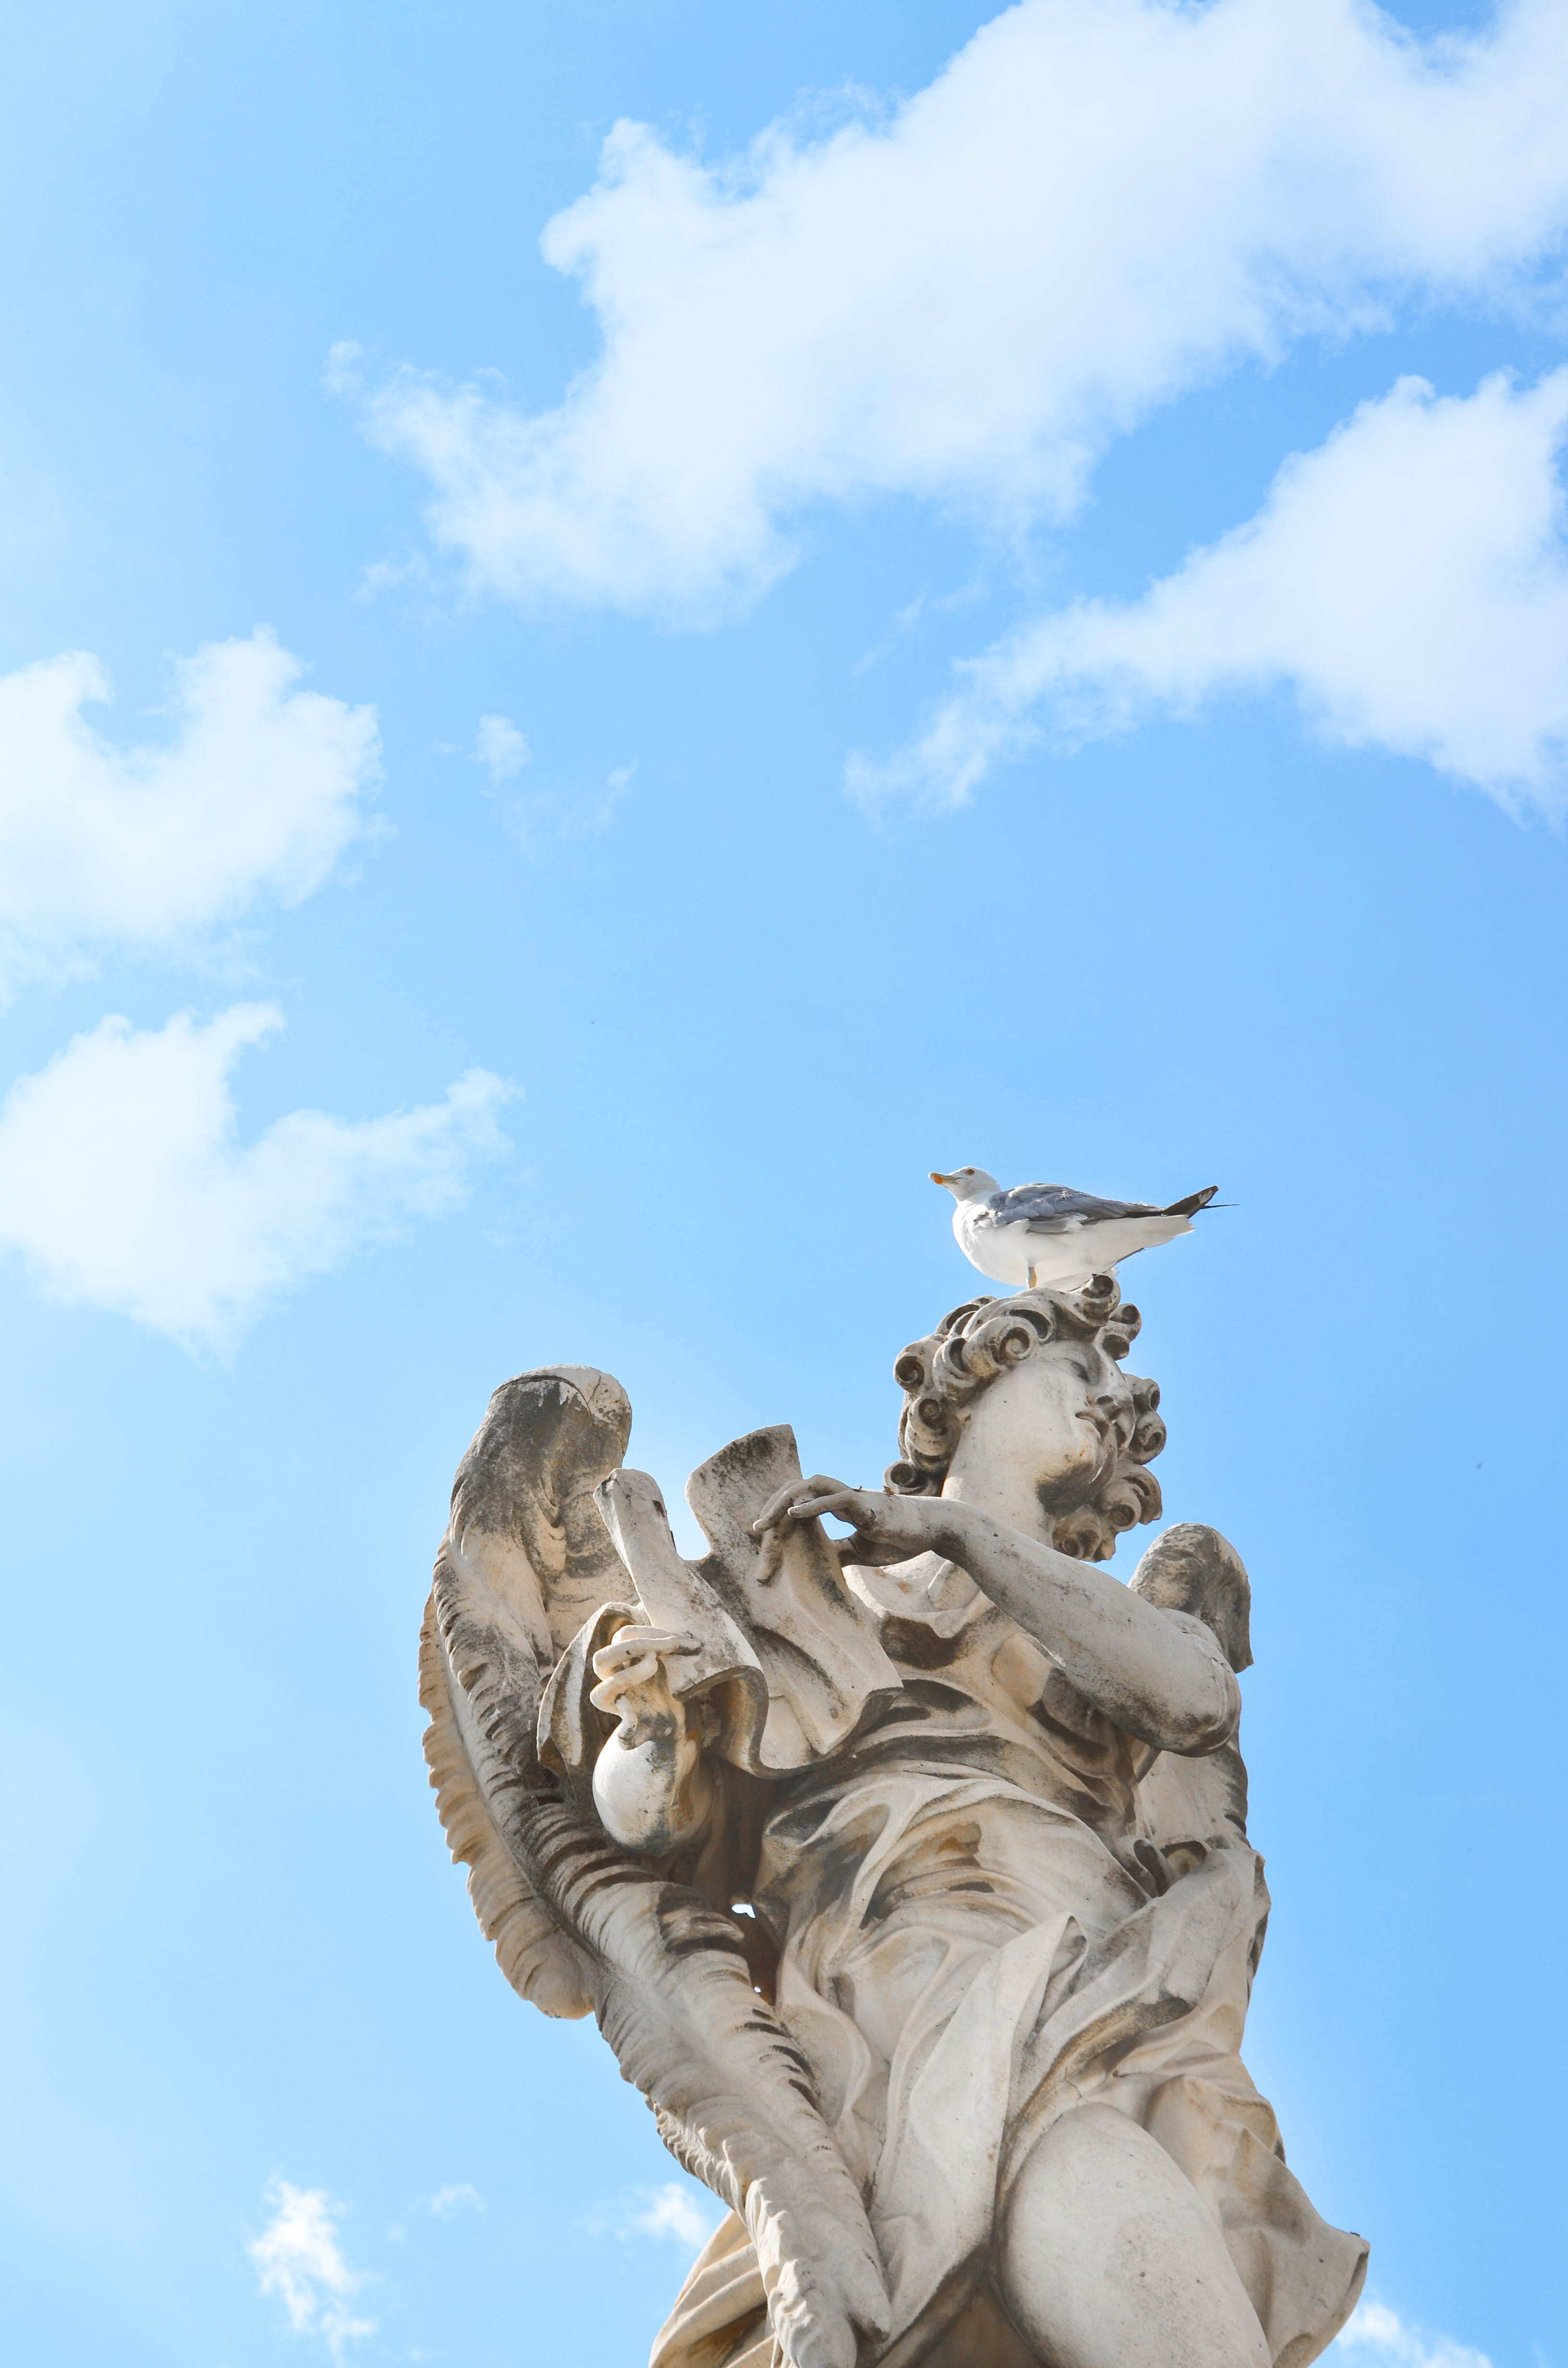 Free stock photo of monument, rome, seagulls, sky